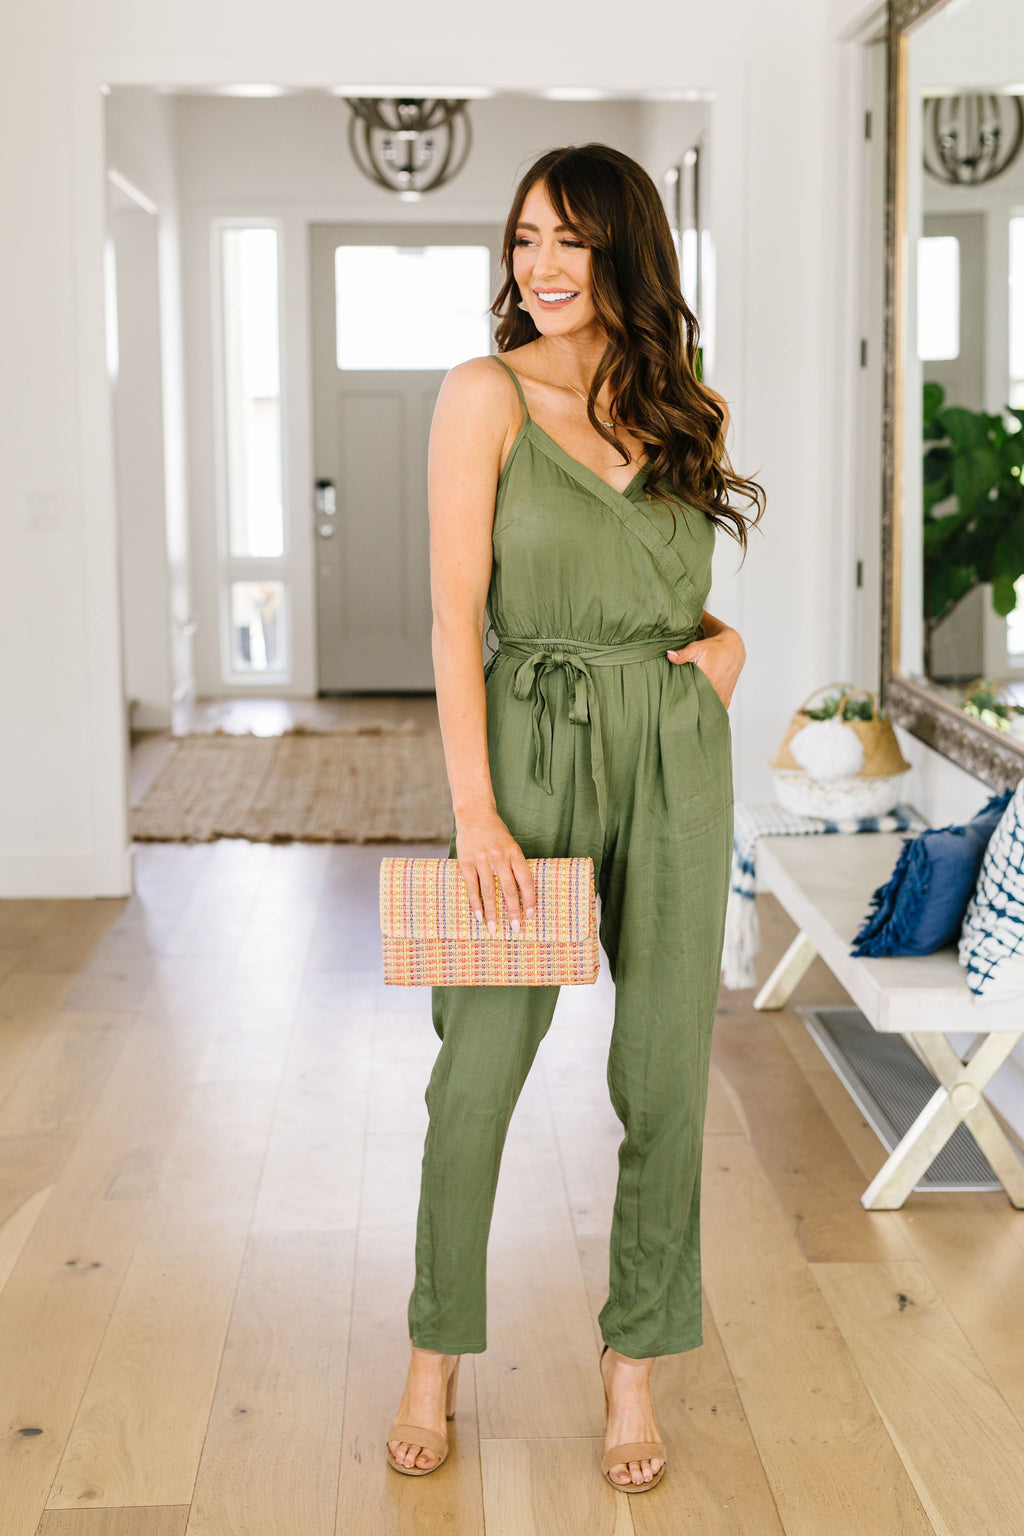 No Surprise Surplice Olive Jumpsuit-4TH2020, 6-19-2020, 6-9-2020, Bonus, Bottoms, Group A, Group B, Group C, L/XL, Large, Medium, Small, XS-Womens Artisan USA American Made Clothing Accessories